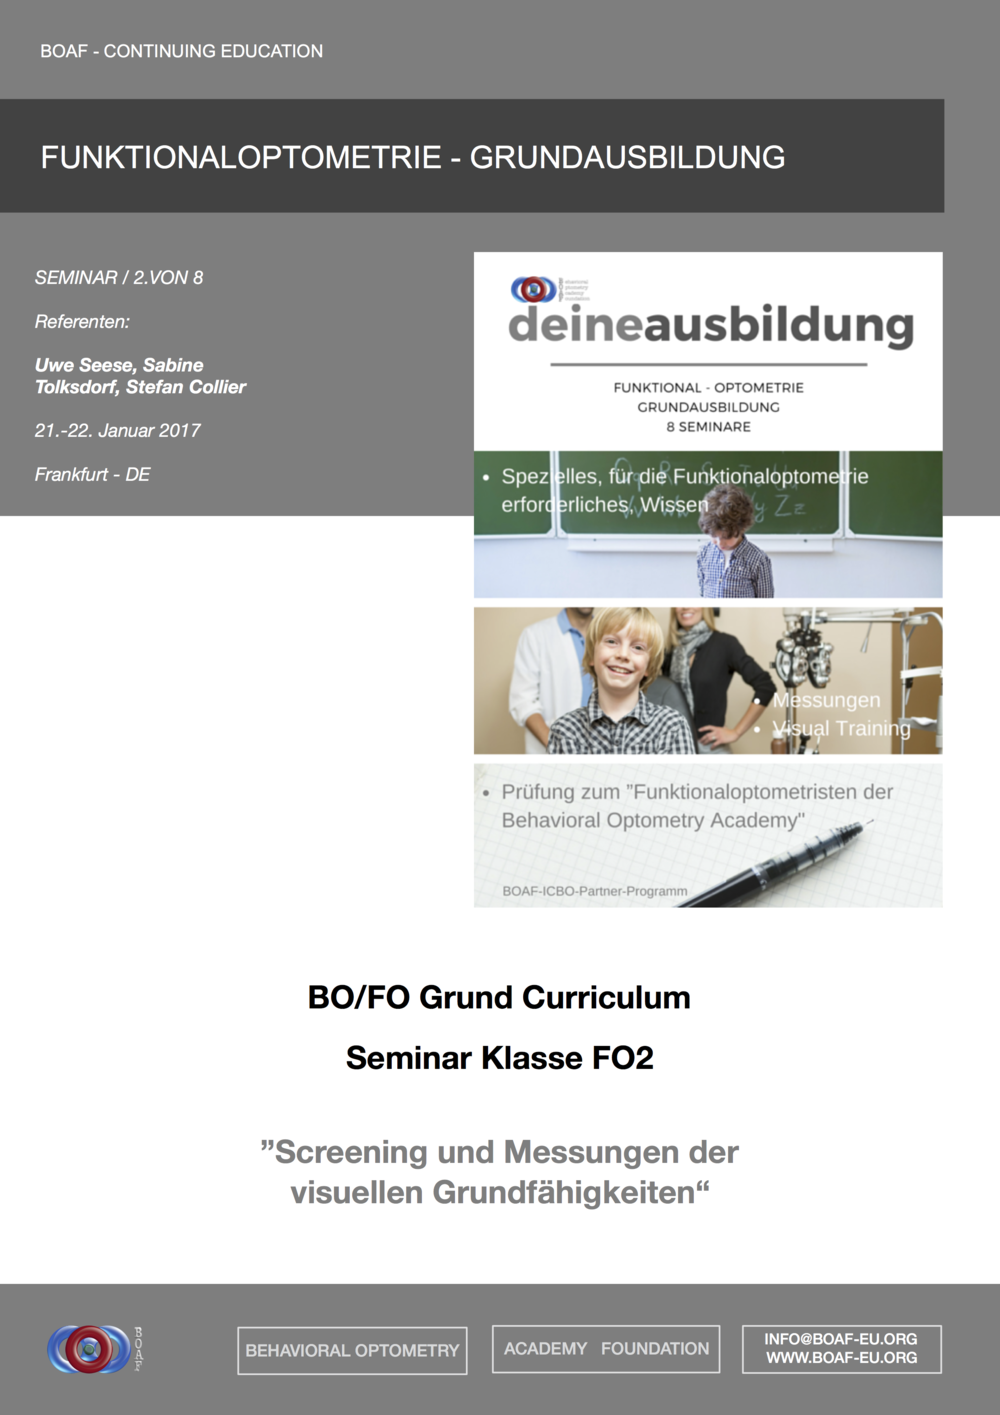 BOAF-Curriculum - Education Brochure -  German --->